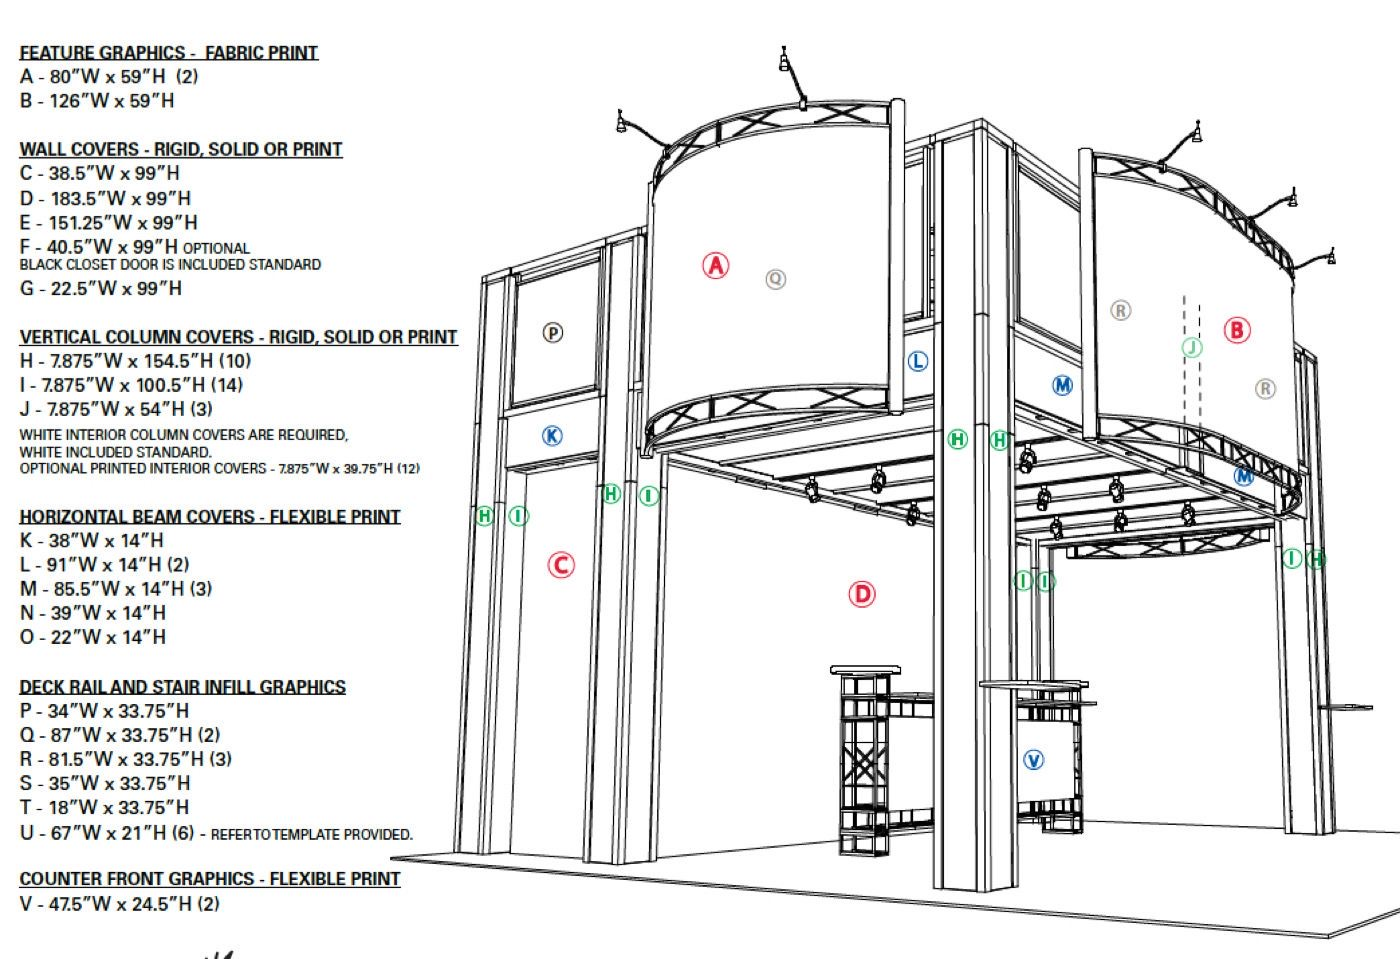 Trade Show Double Deck Booth Rentals